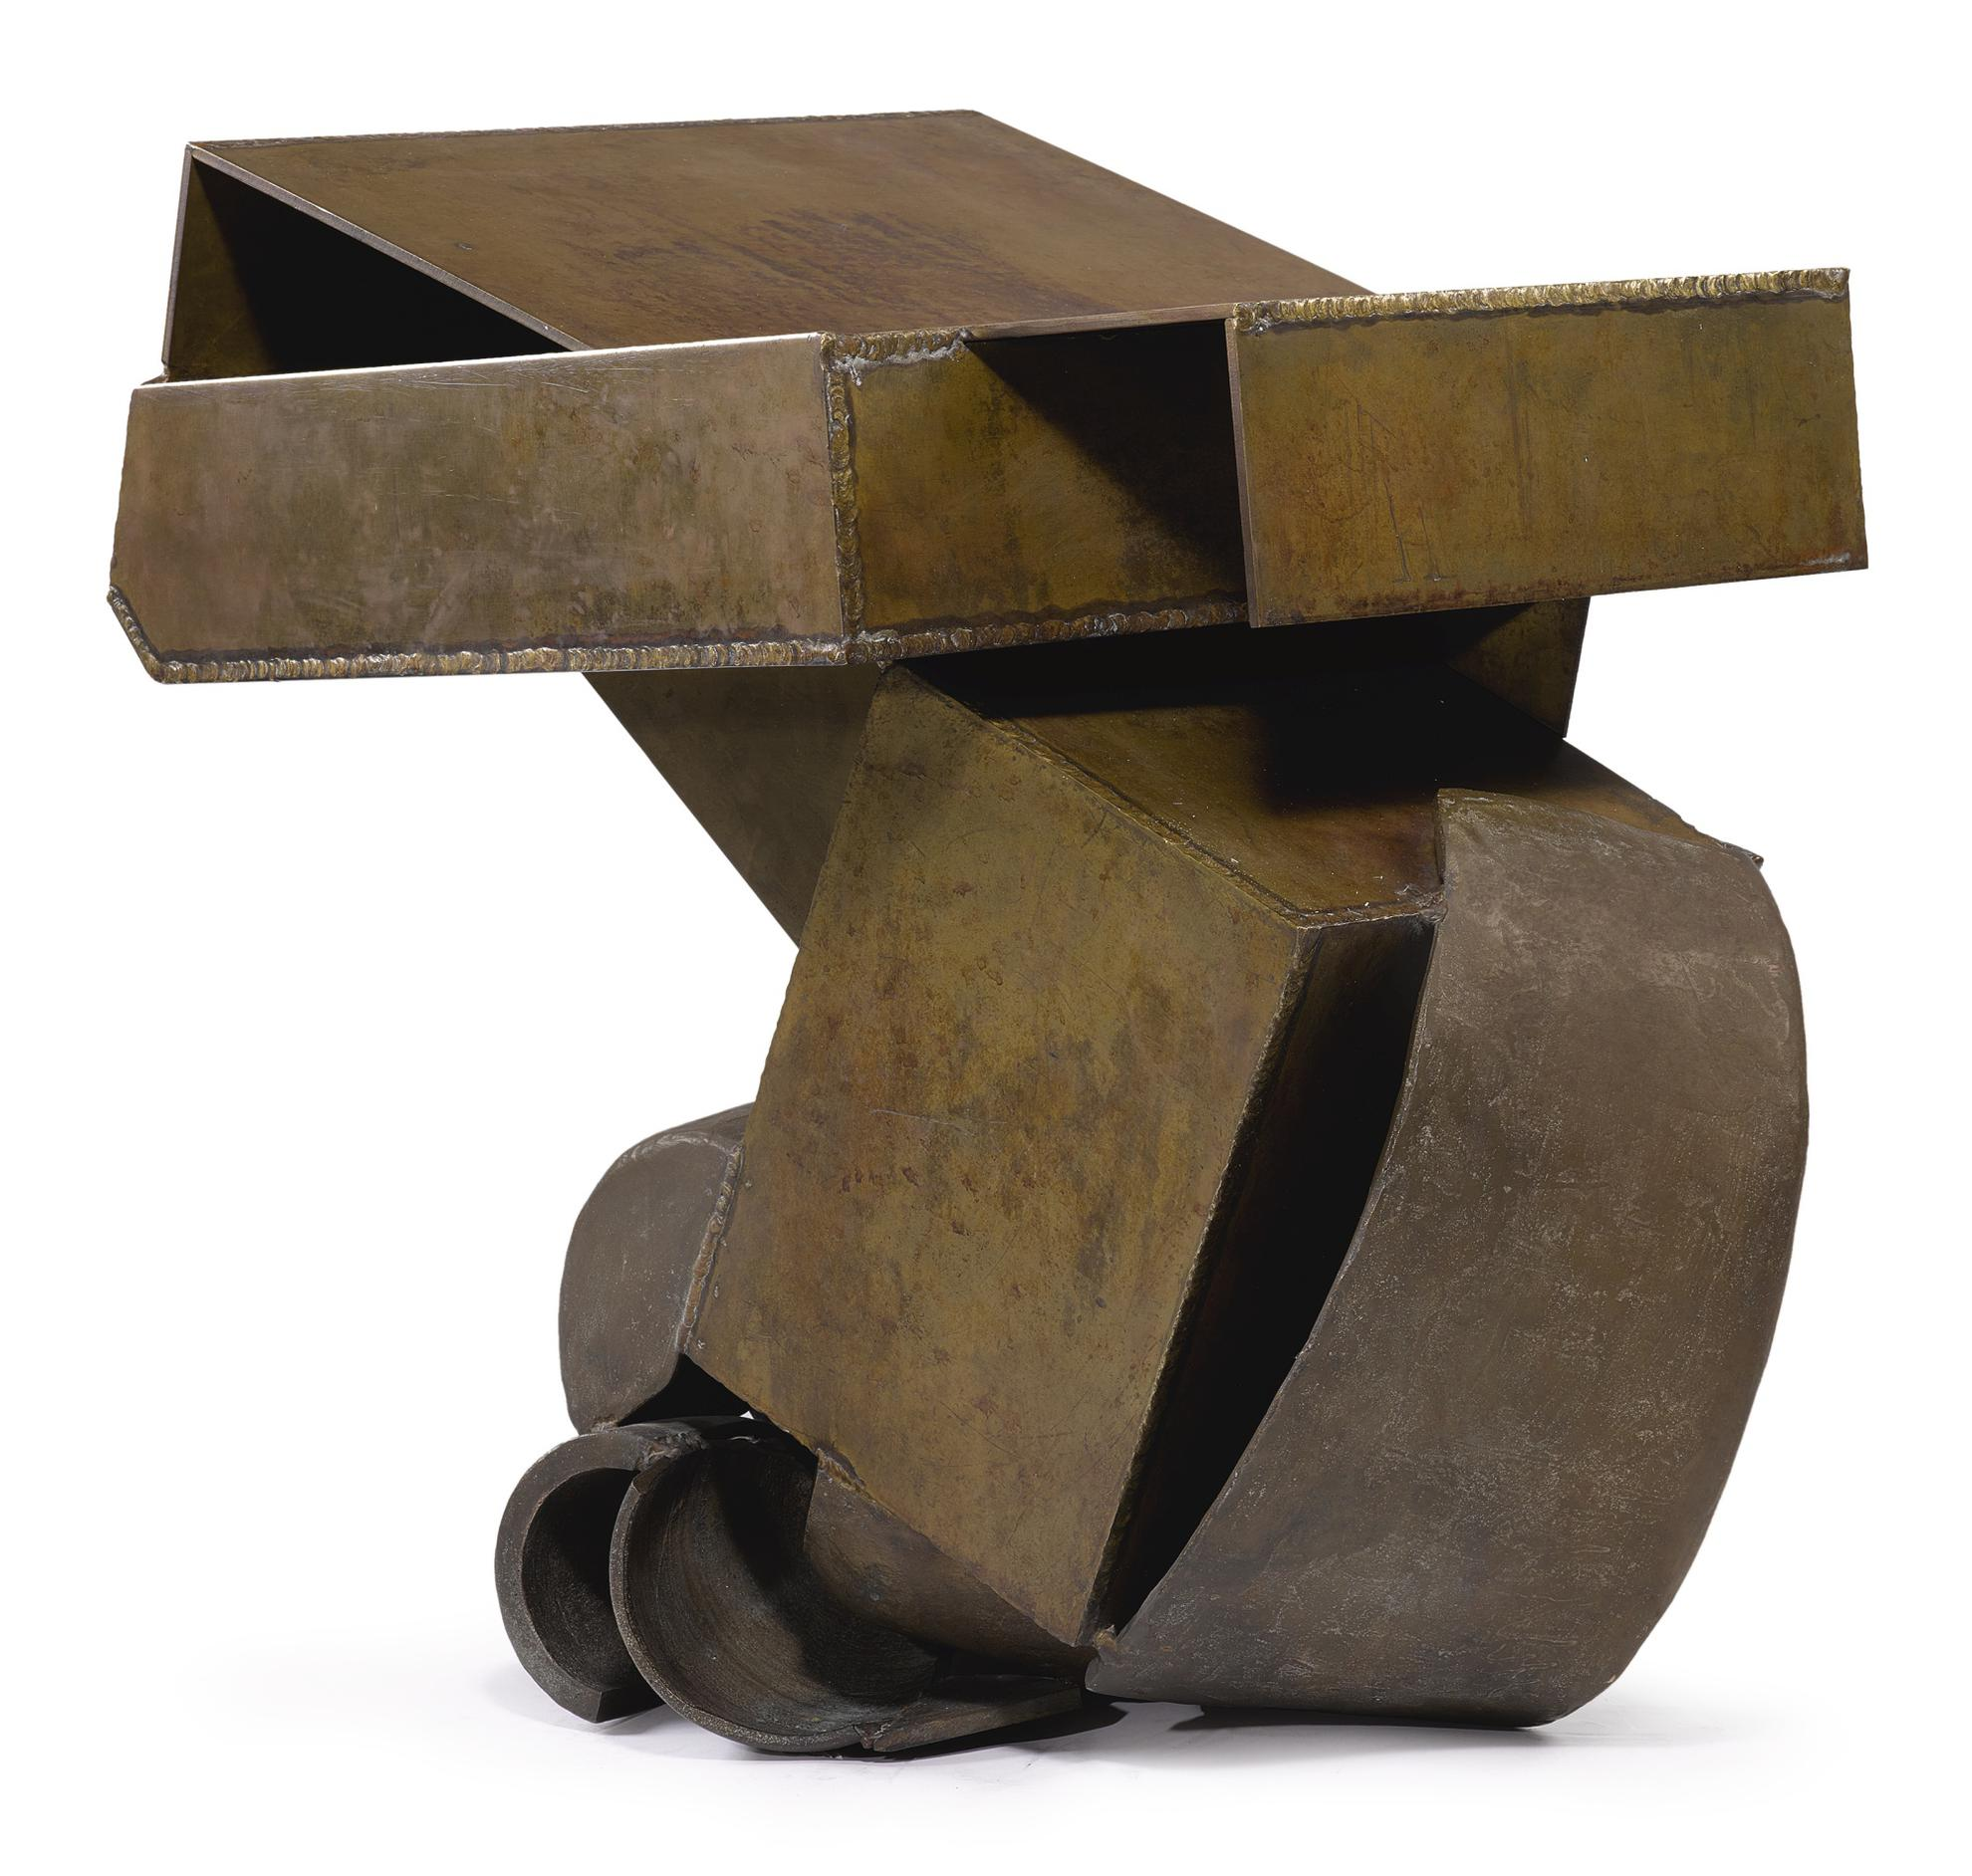 Anthony Caro-Half Way-1981